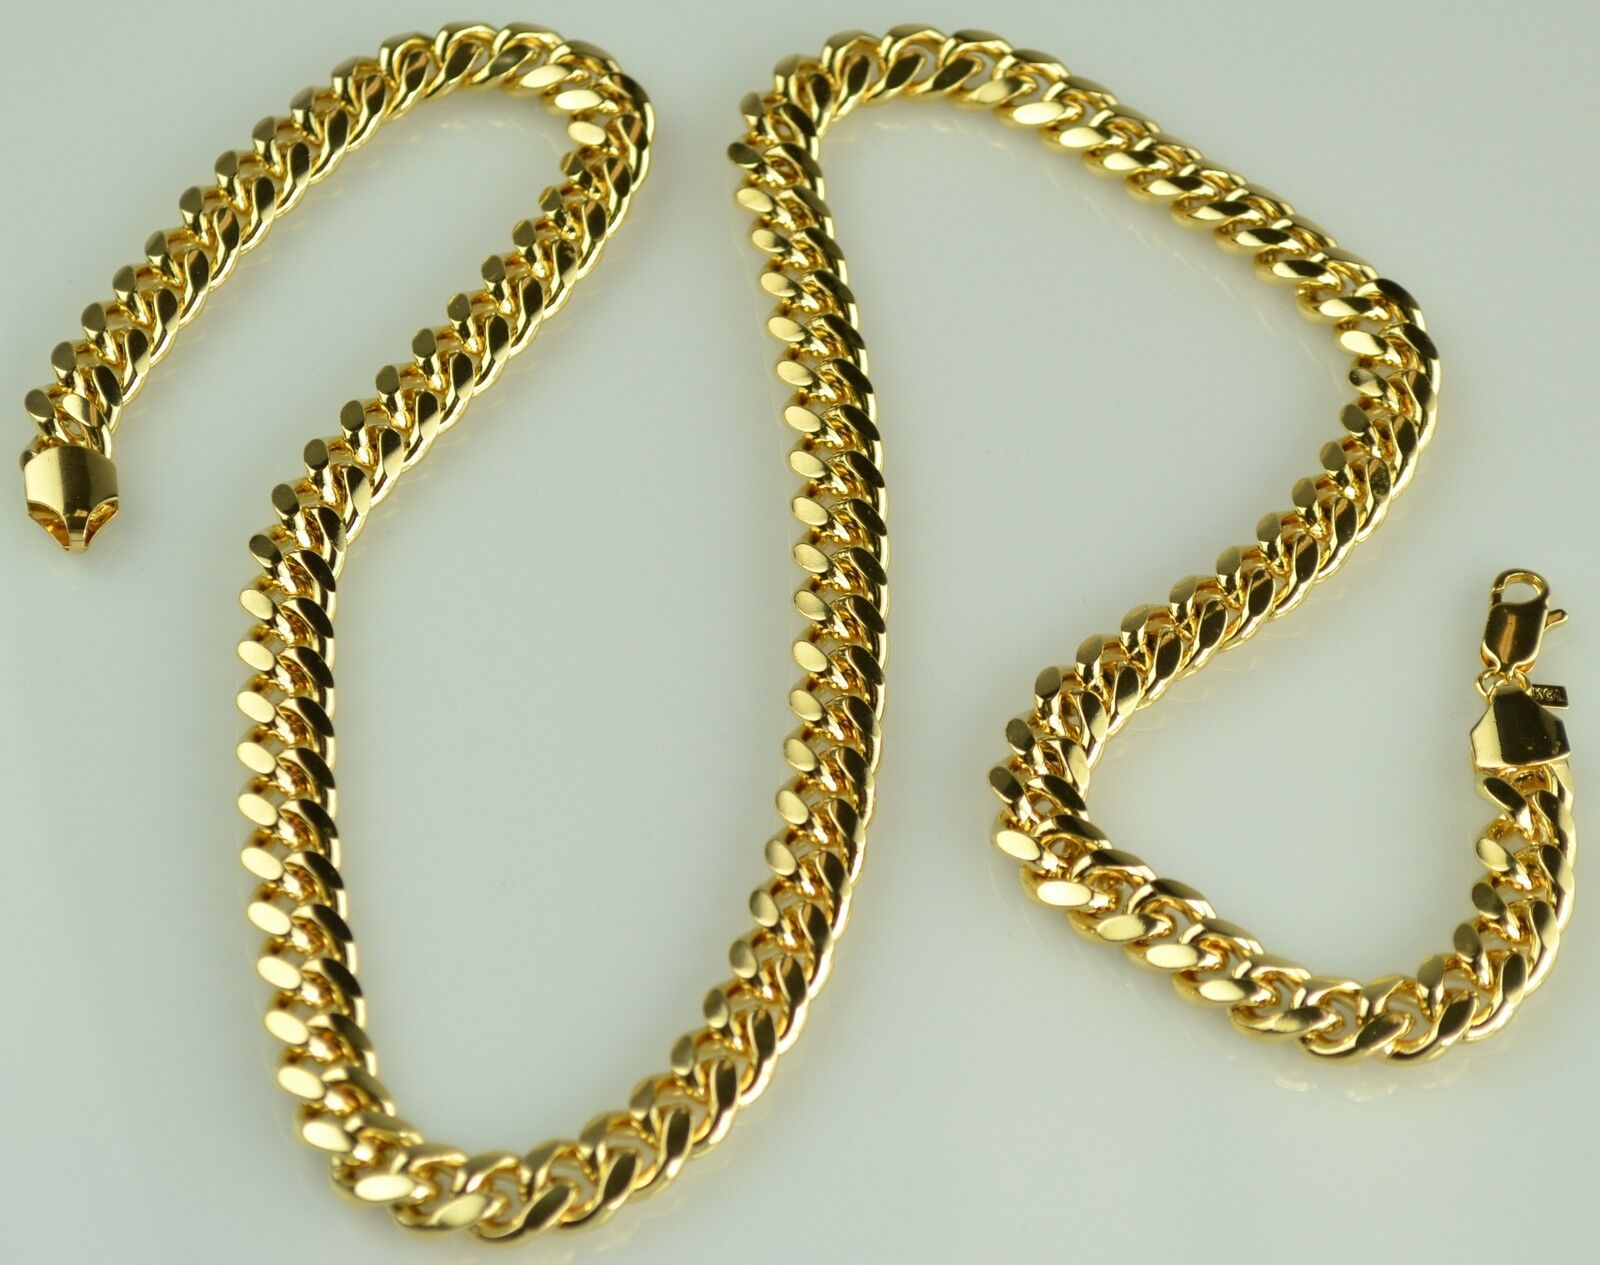 Solid Heavy 18K Gold Chain Necklace